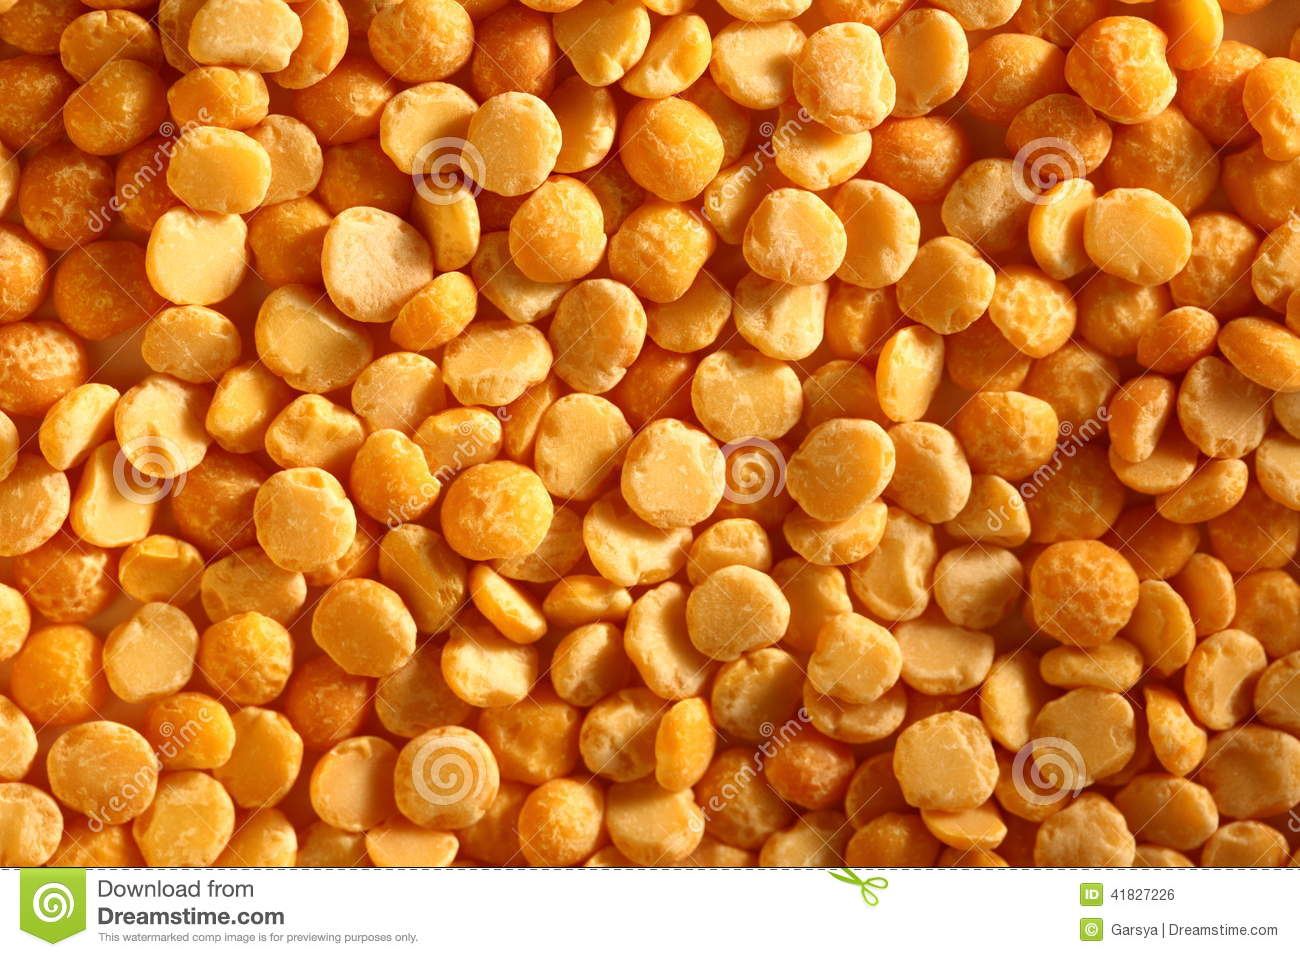 is a dried yellow pea a Split yellow peas belong to the same family as lentils and are highly nutritious—high in both protein and fiber a half-cup serving of cooked split peas (cup dry) provides 110 calories, 10 grams of protein (20% of the daily value), less than one gram of fat and 12 grams of dietary fiber.